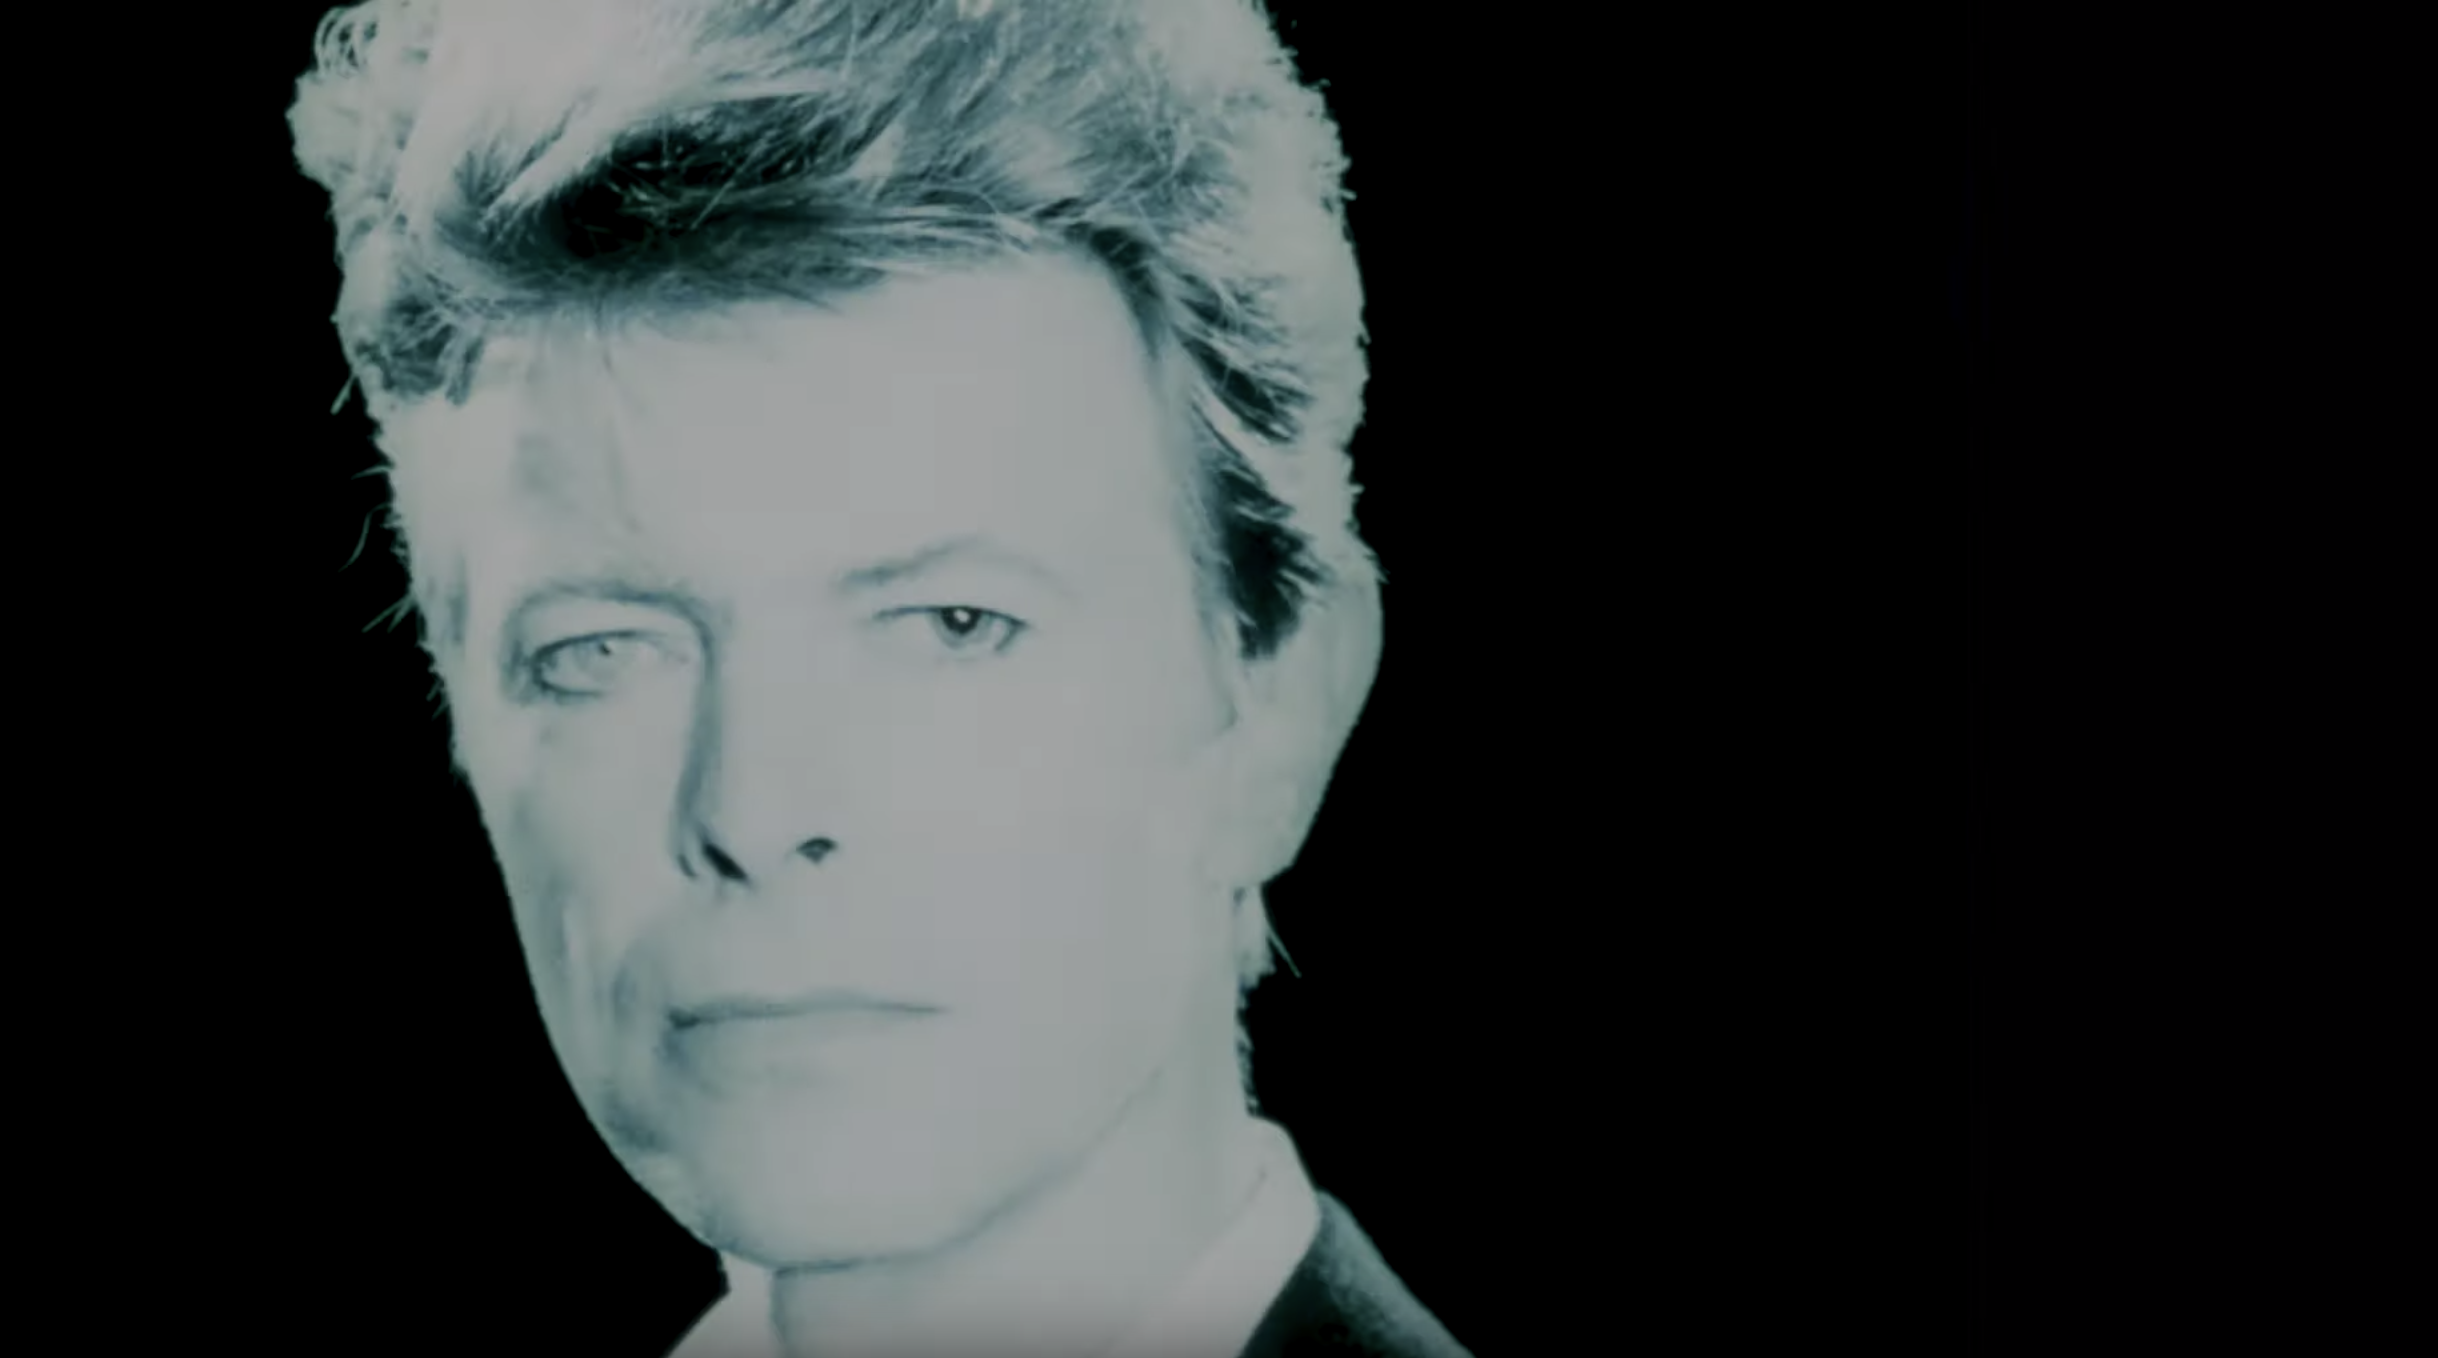 David Bowie S Space Oddity Marks 50th Anniversary With New Video